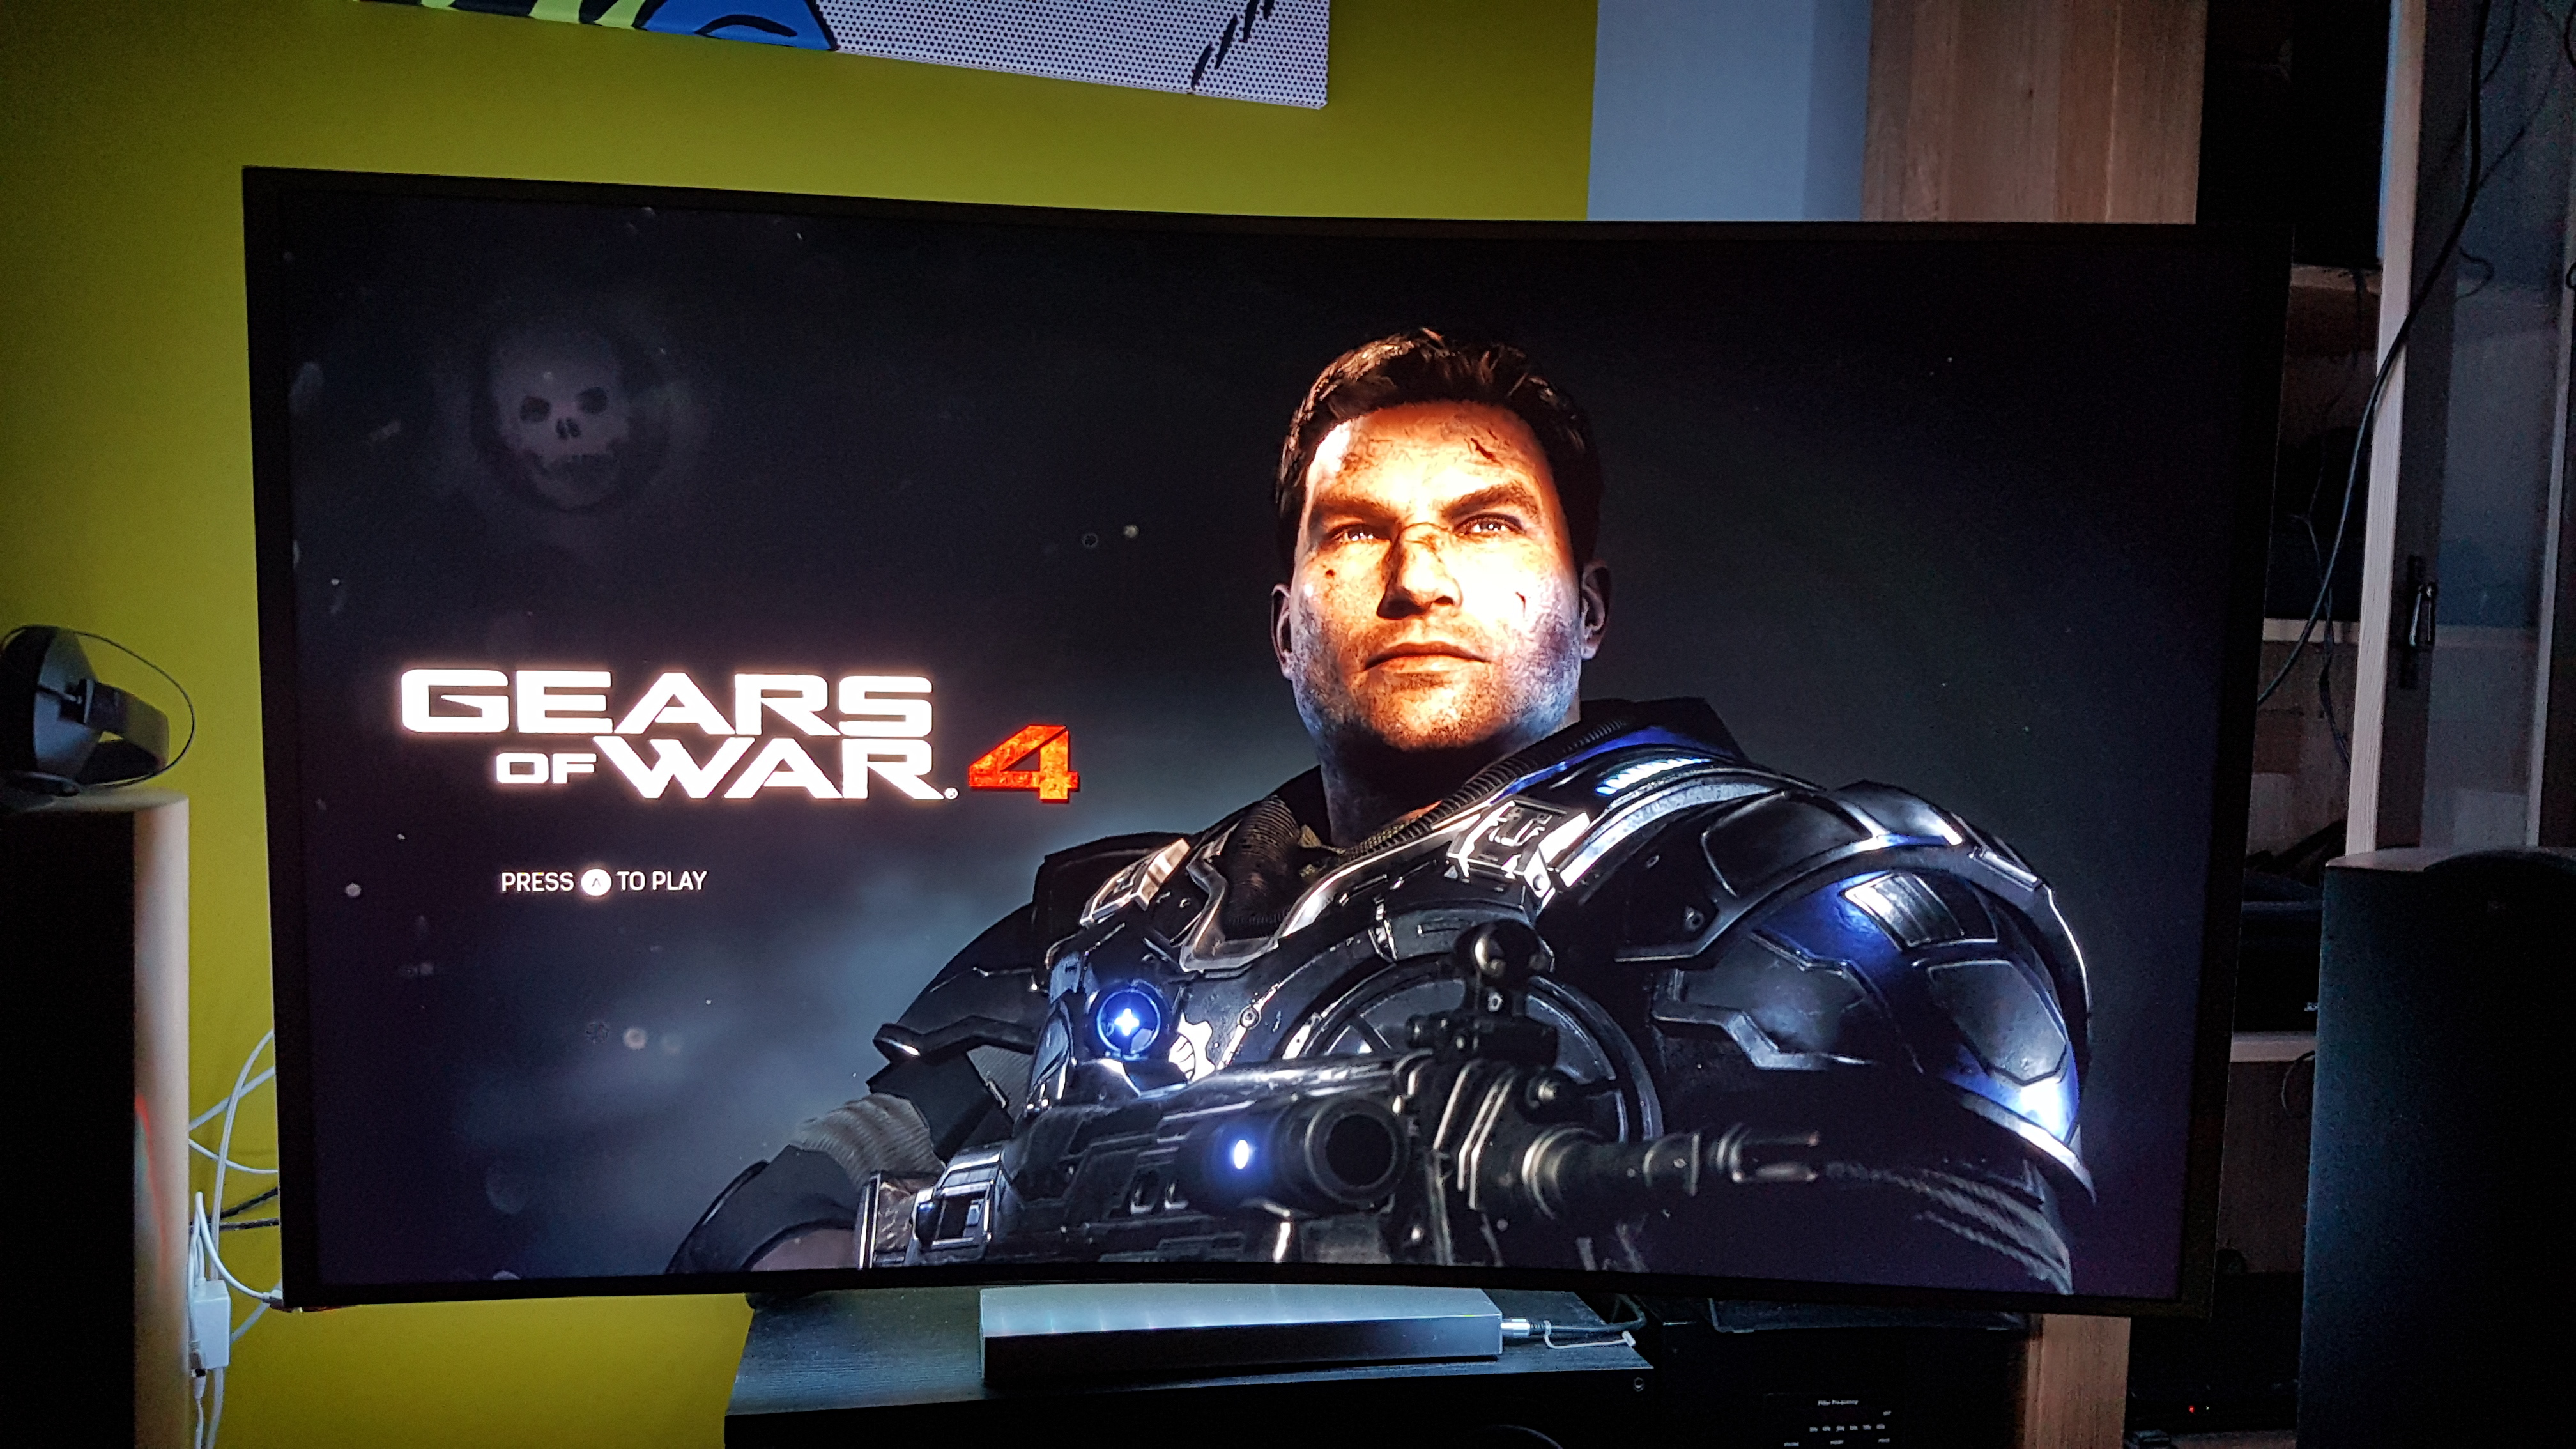 Gears Of War 4 HDR